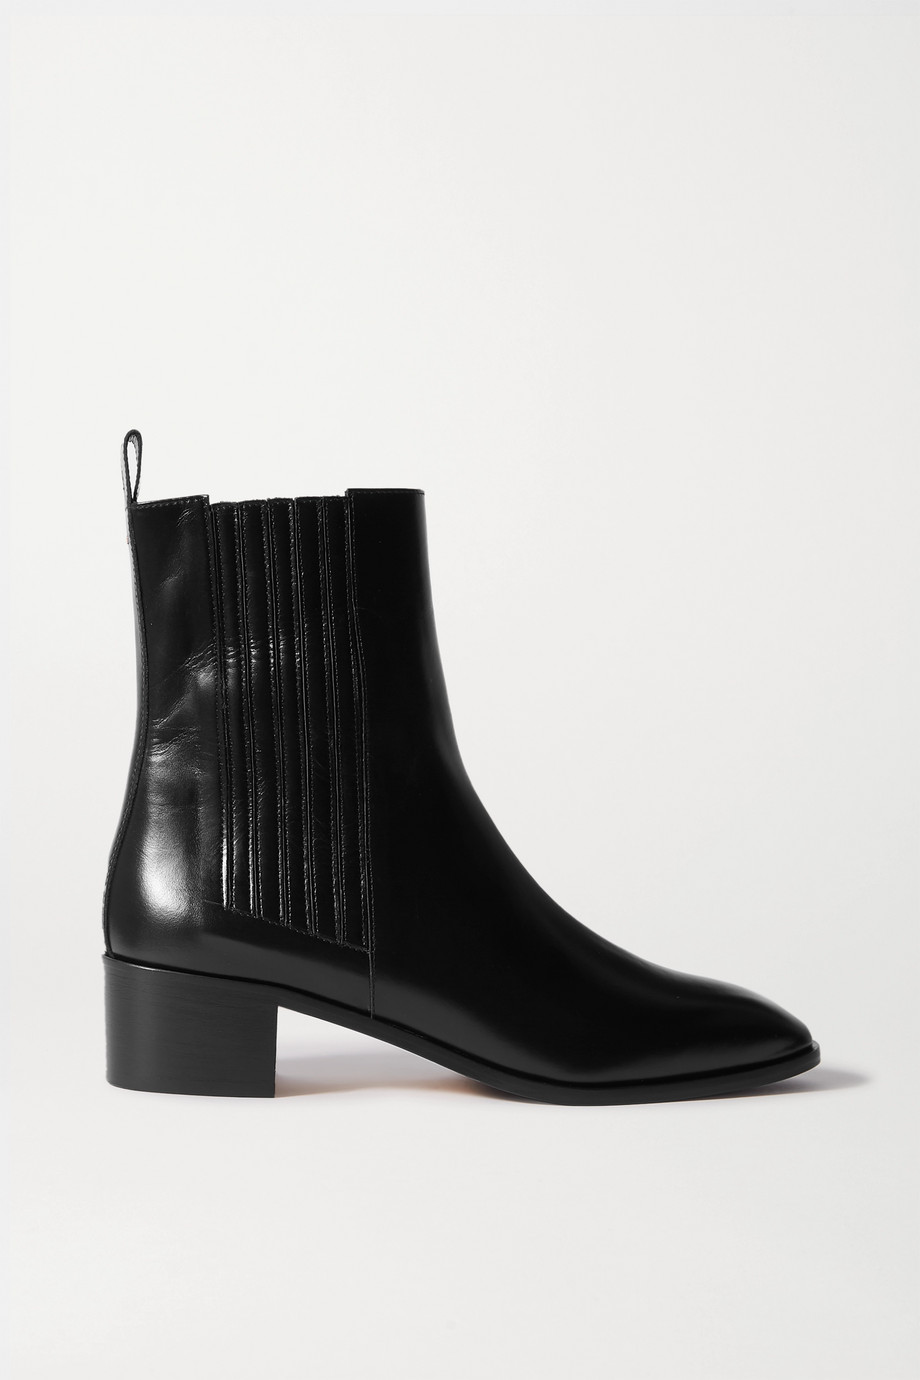 AEYDE Neil leather Chelsea boots